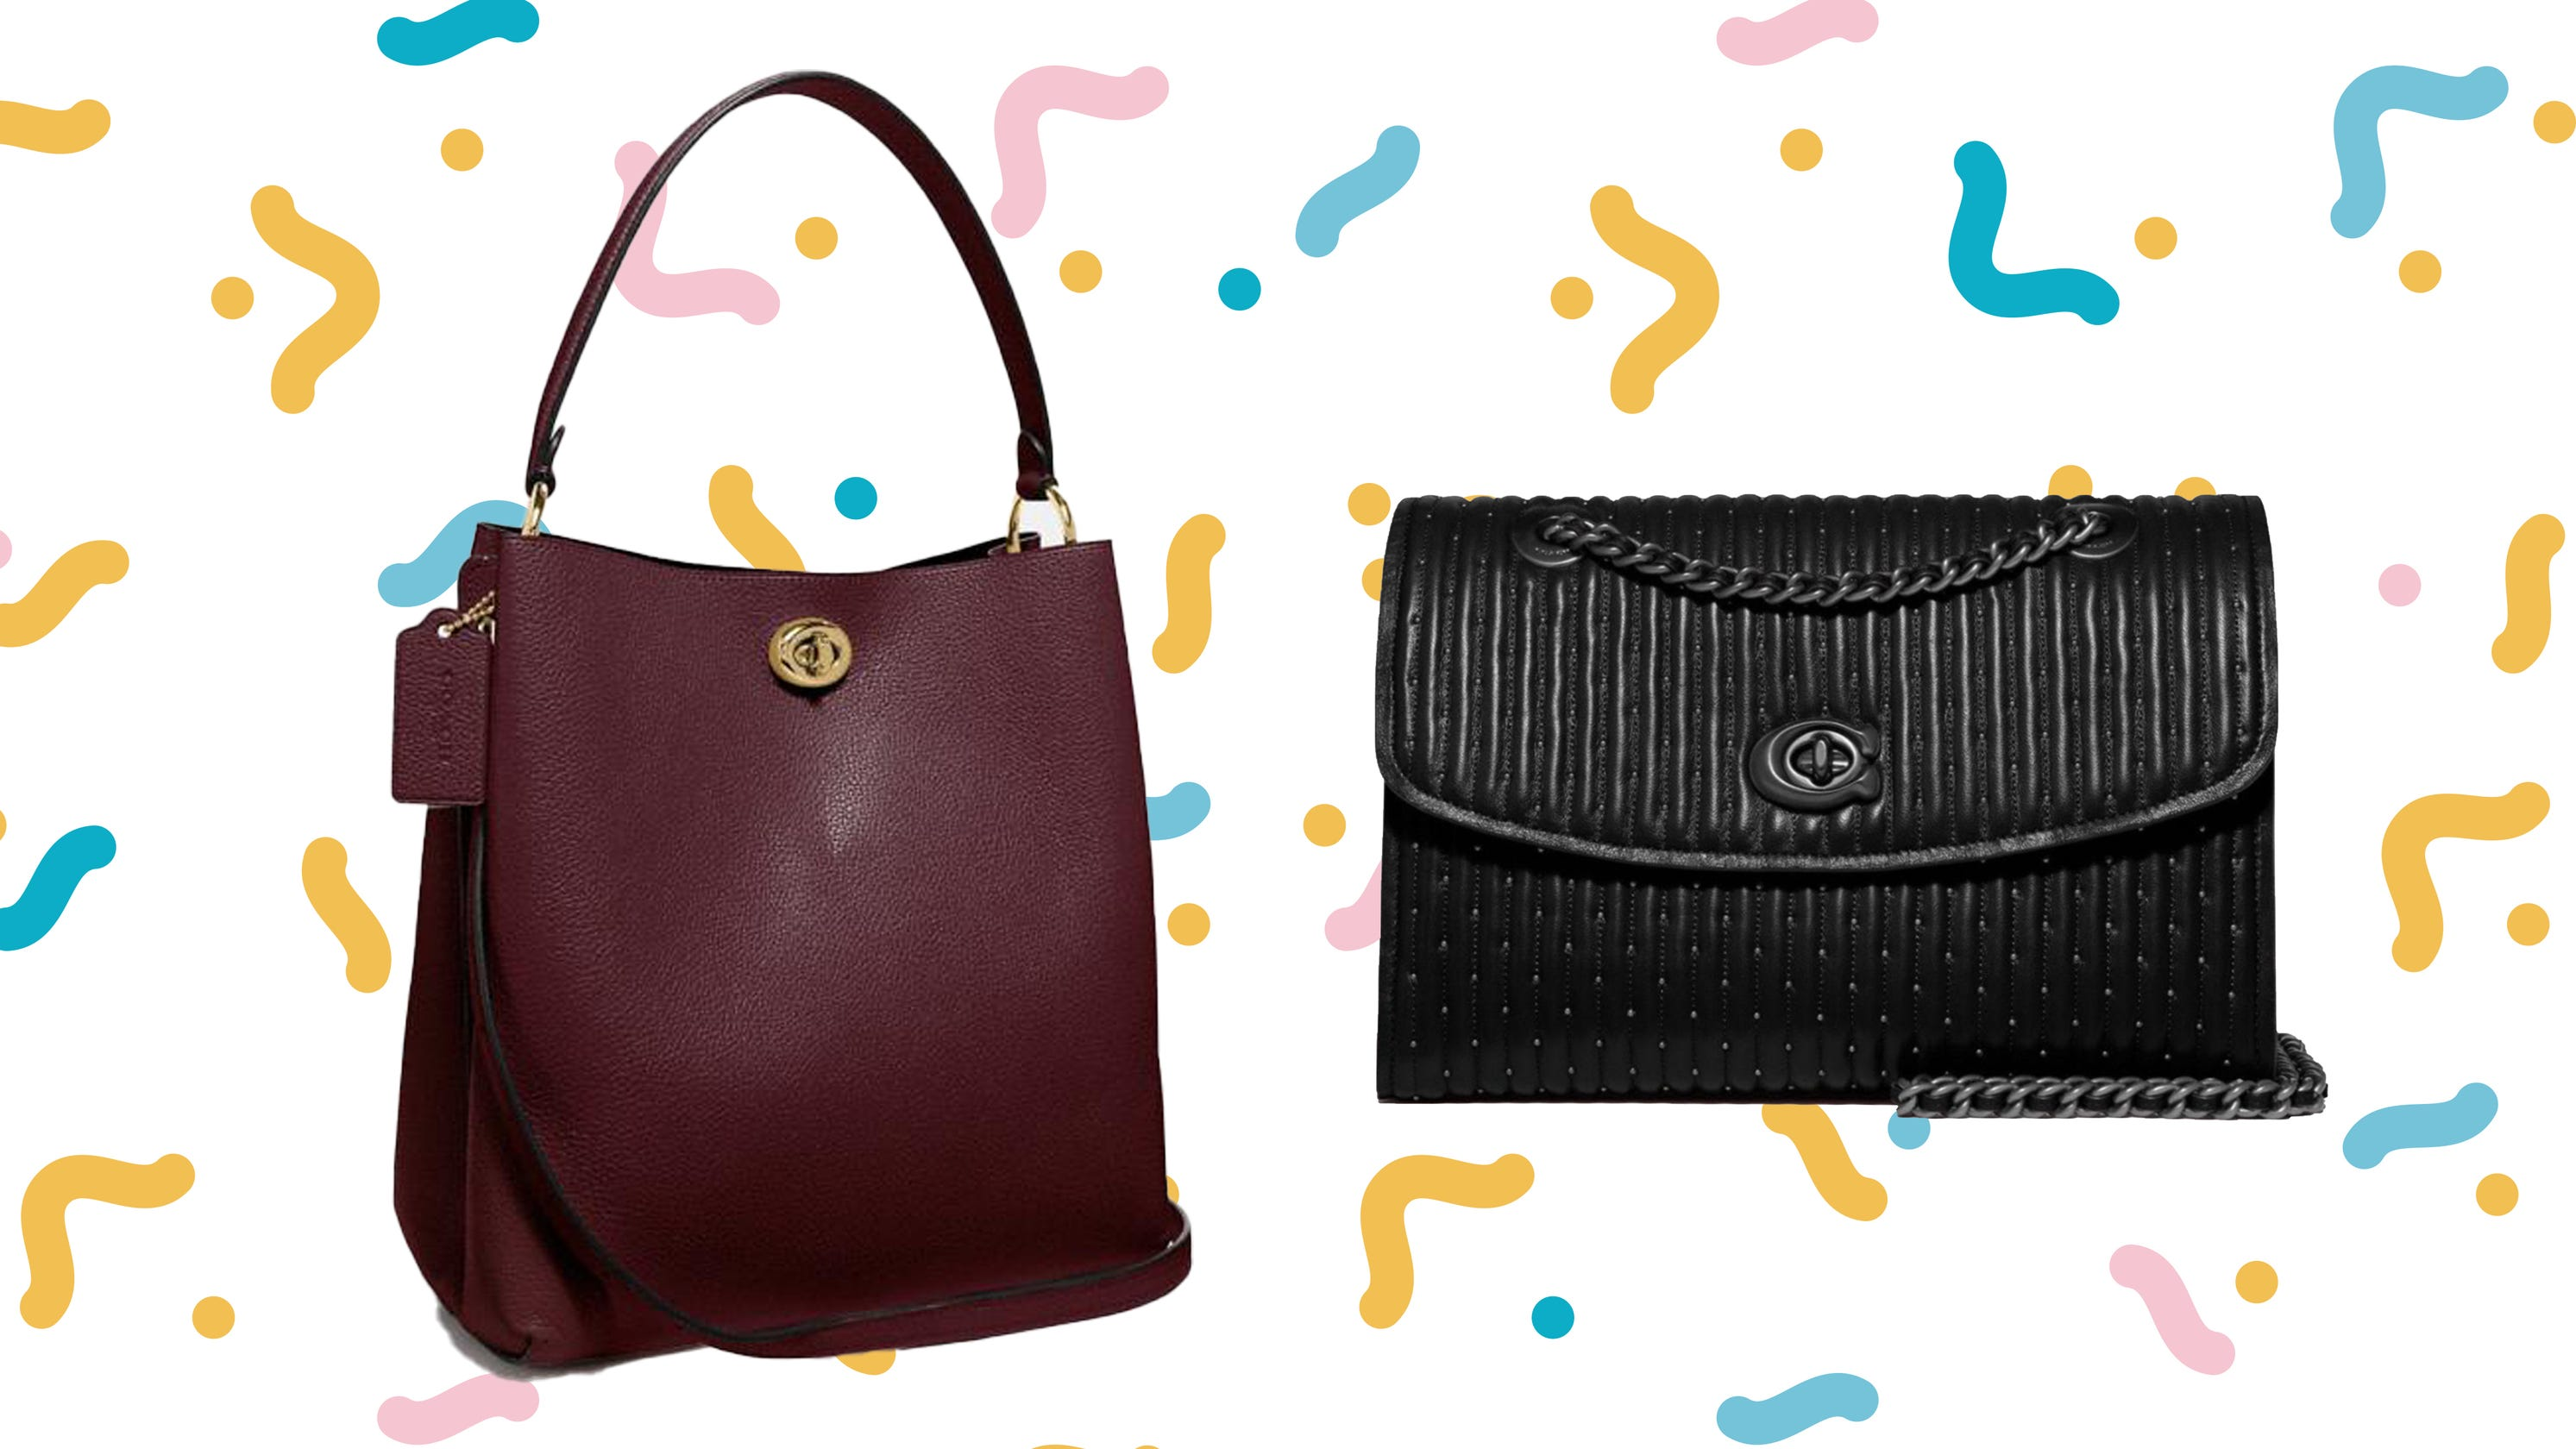 Coach bags are at some of their best prices yet thanks to this rare coupon code